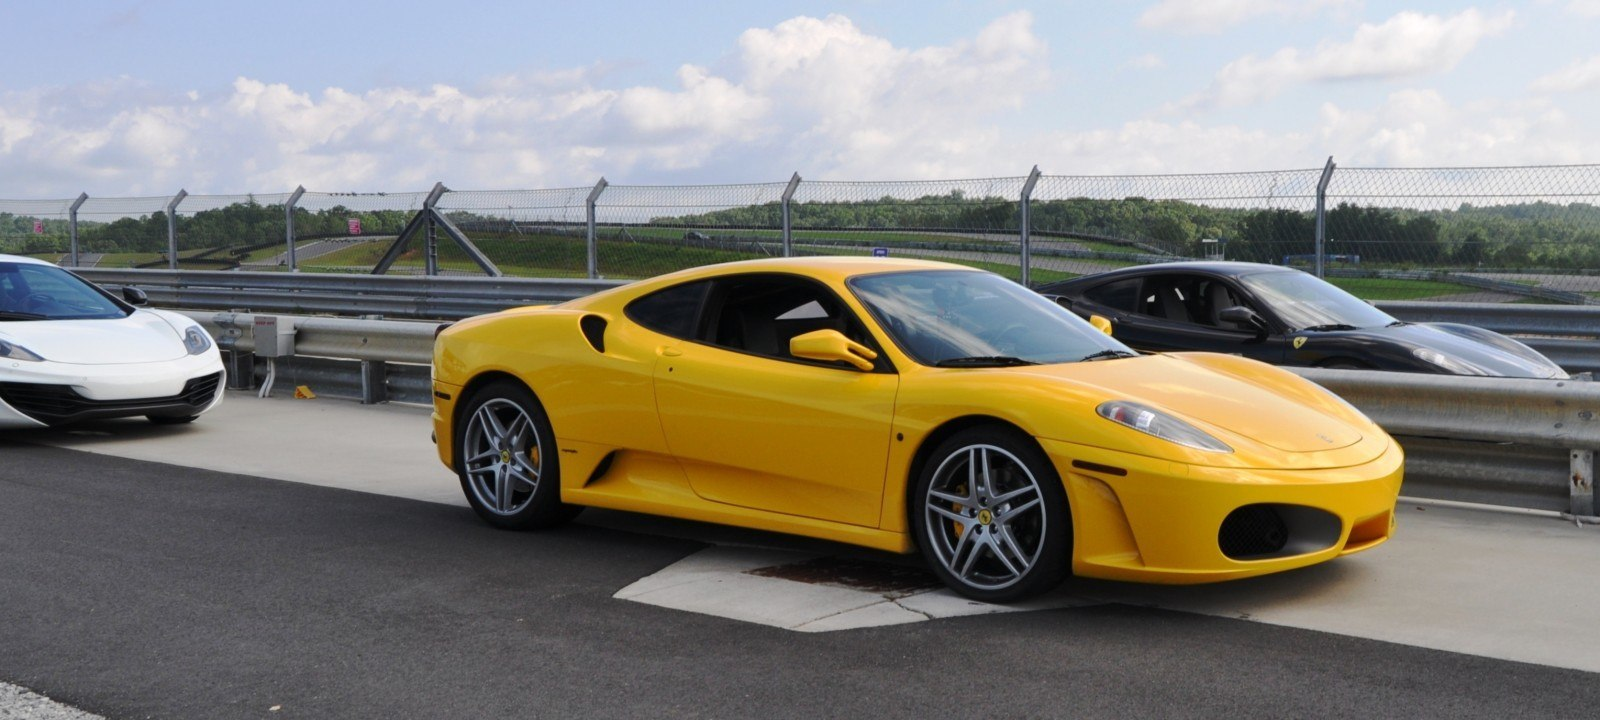 Beating the Supercar Paradox - 2007 Ferrari F430 at Velocity Motorsports Supercar Track Drive 7